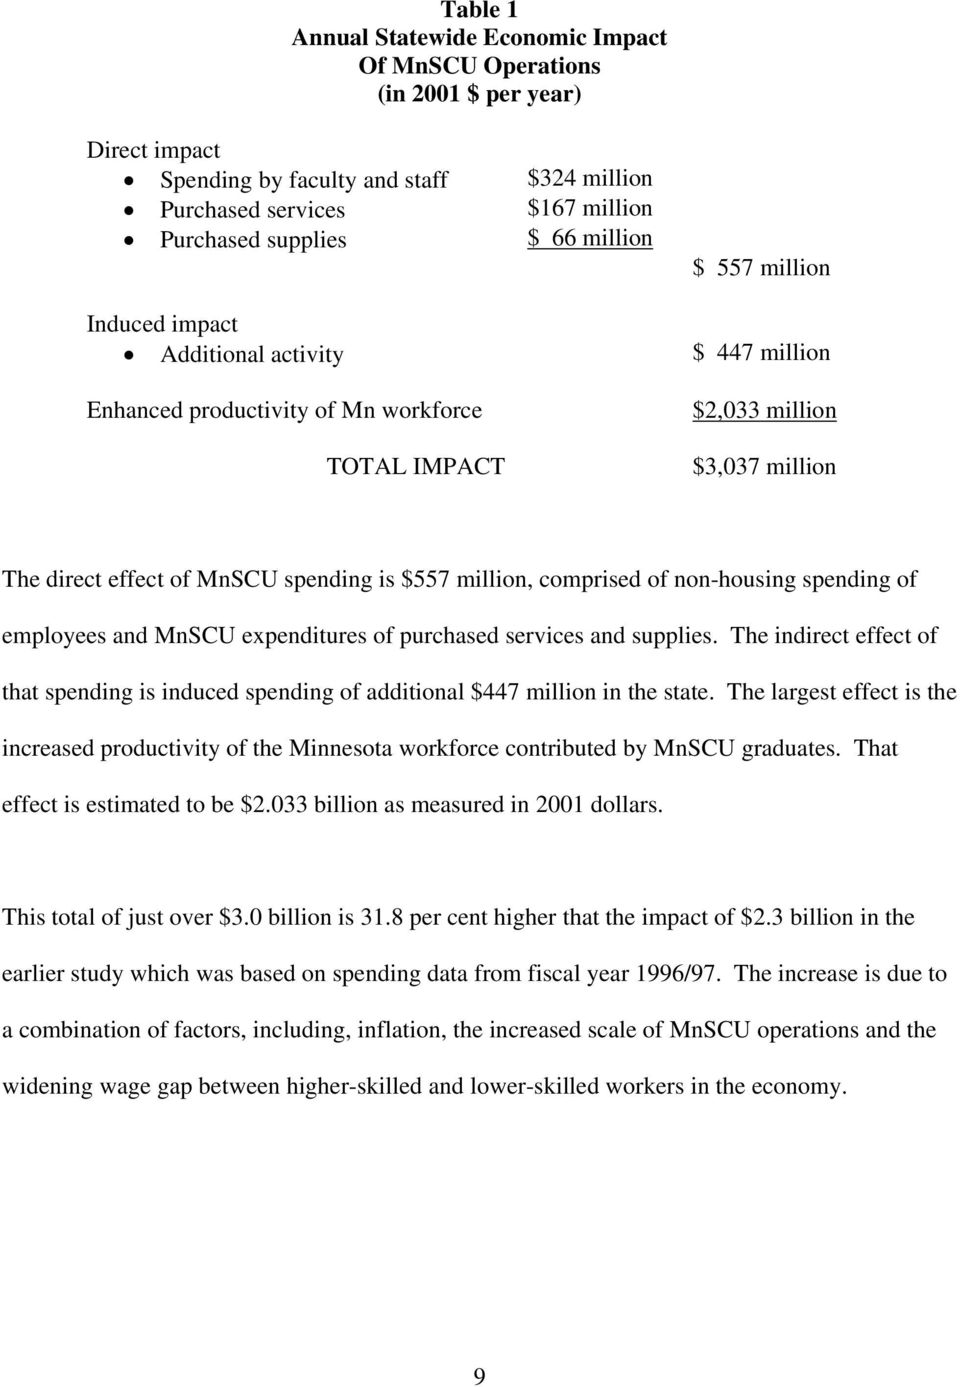 million, comprised of non-housing spending of employees and MnSCU expenditures of purchased services and supplies.